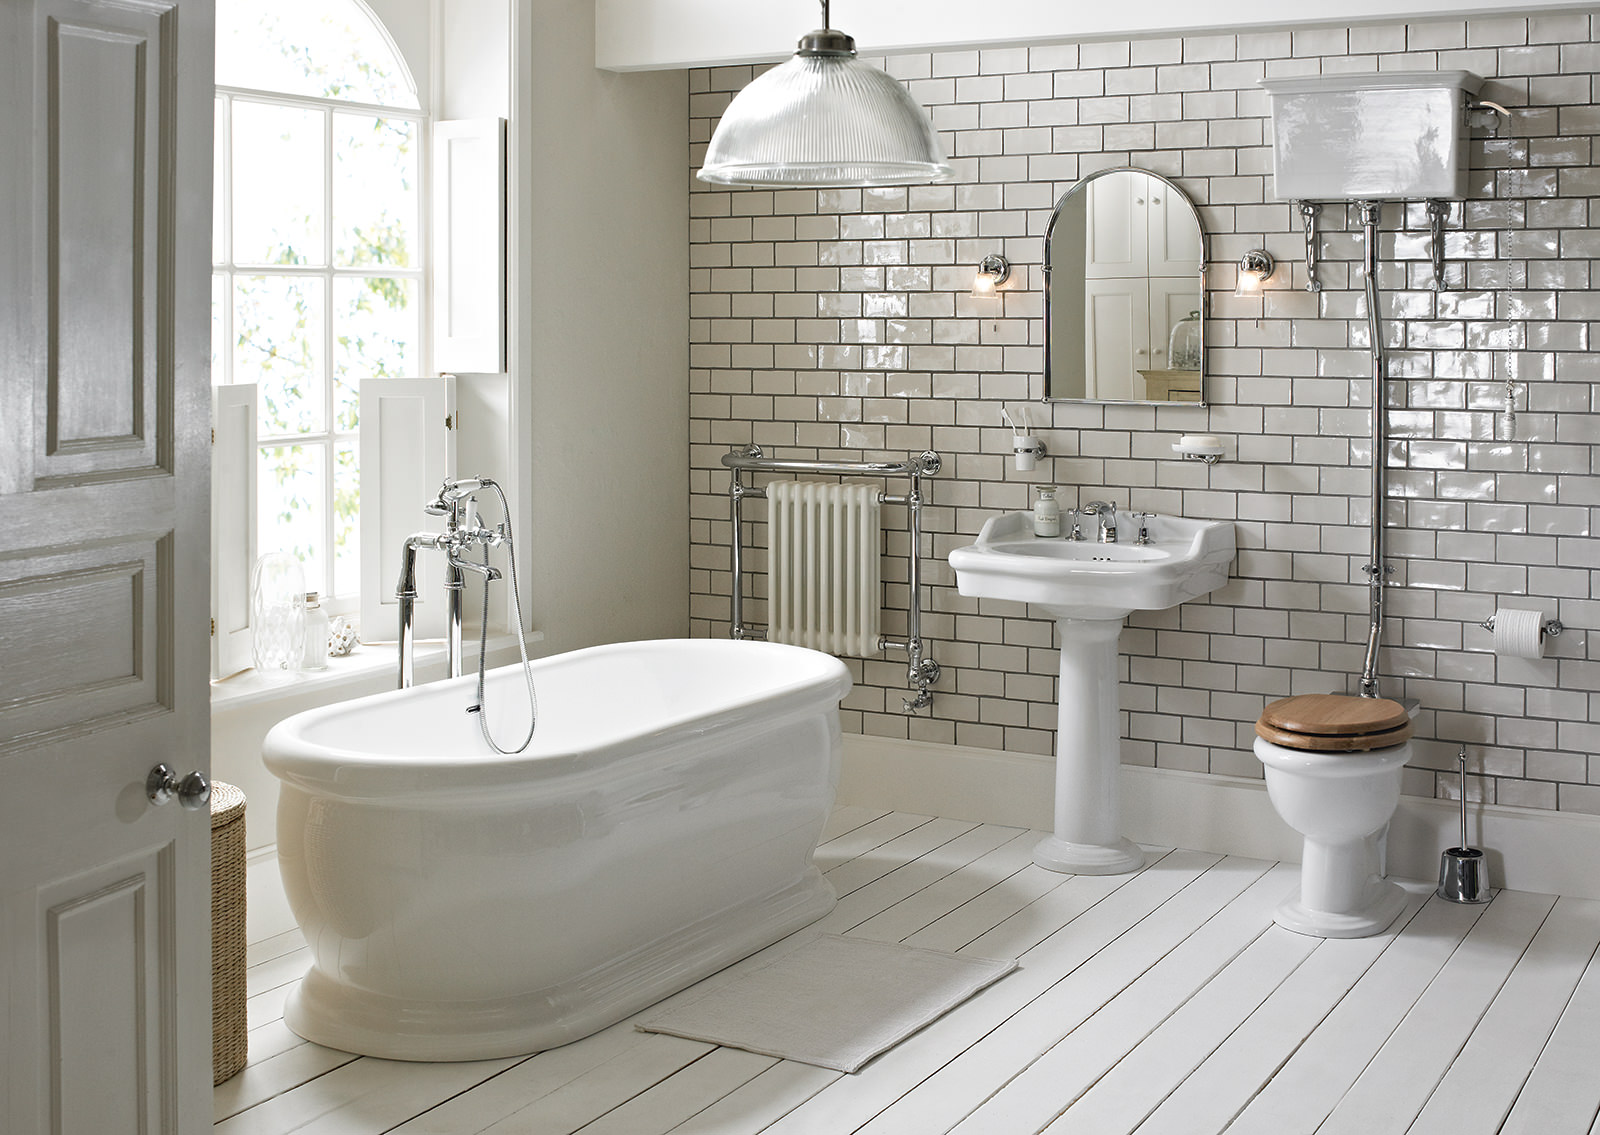 Heritage victoria high level wc and cistern with flush pack for Traditional bathroom ideas photo gallery